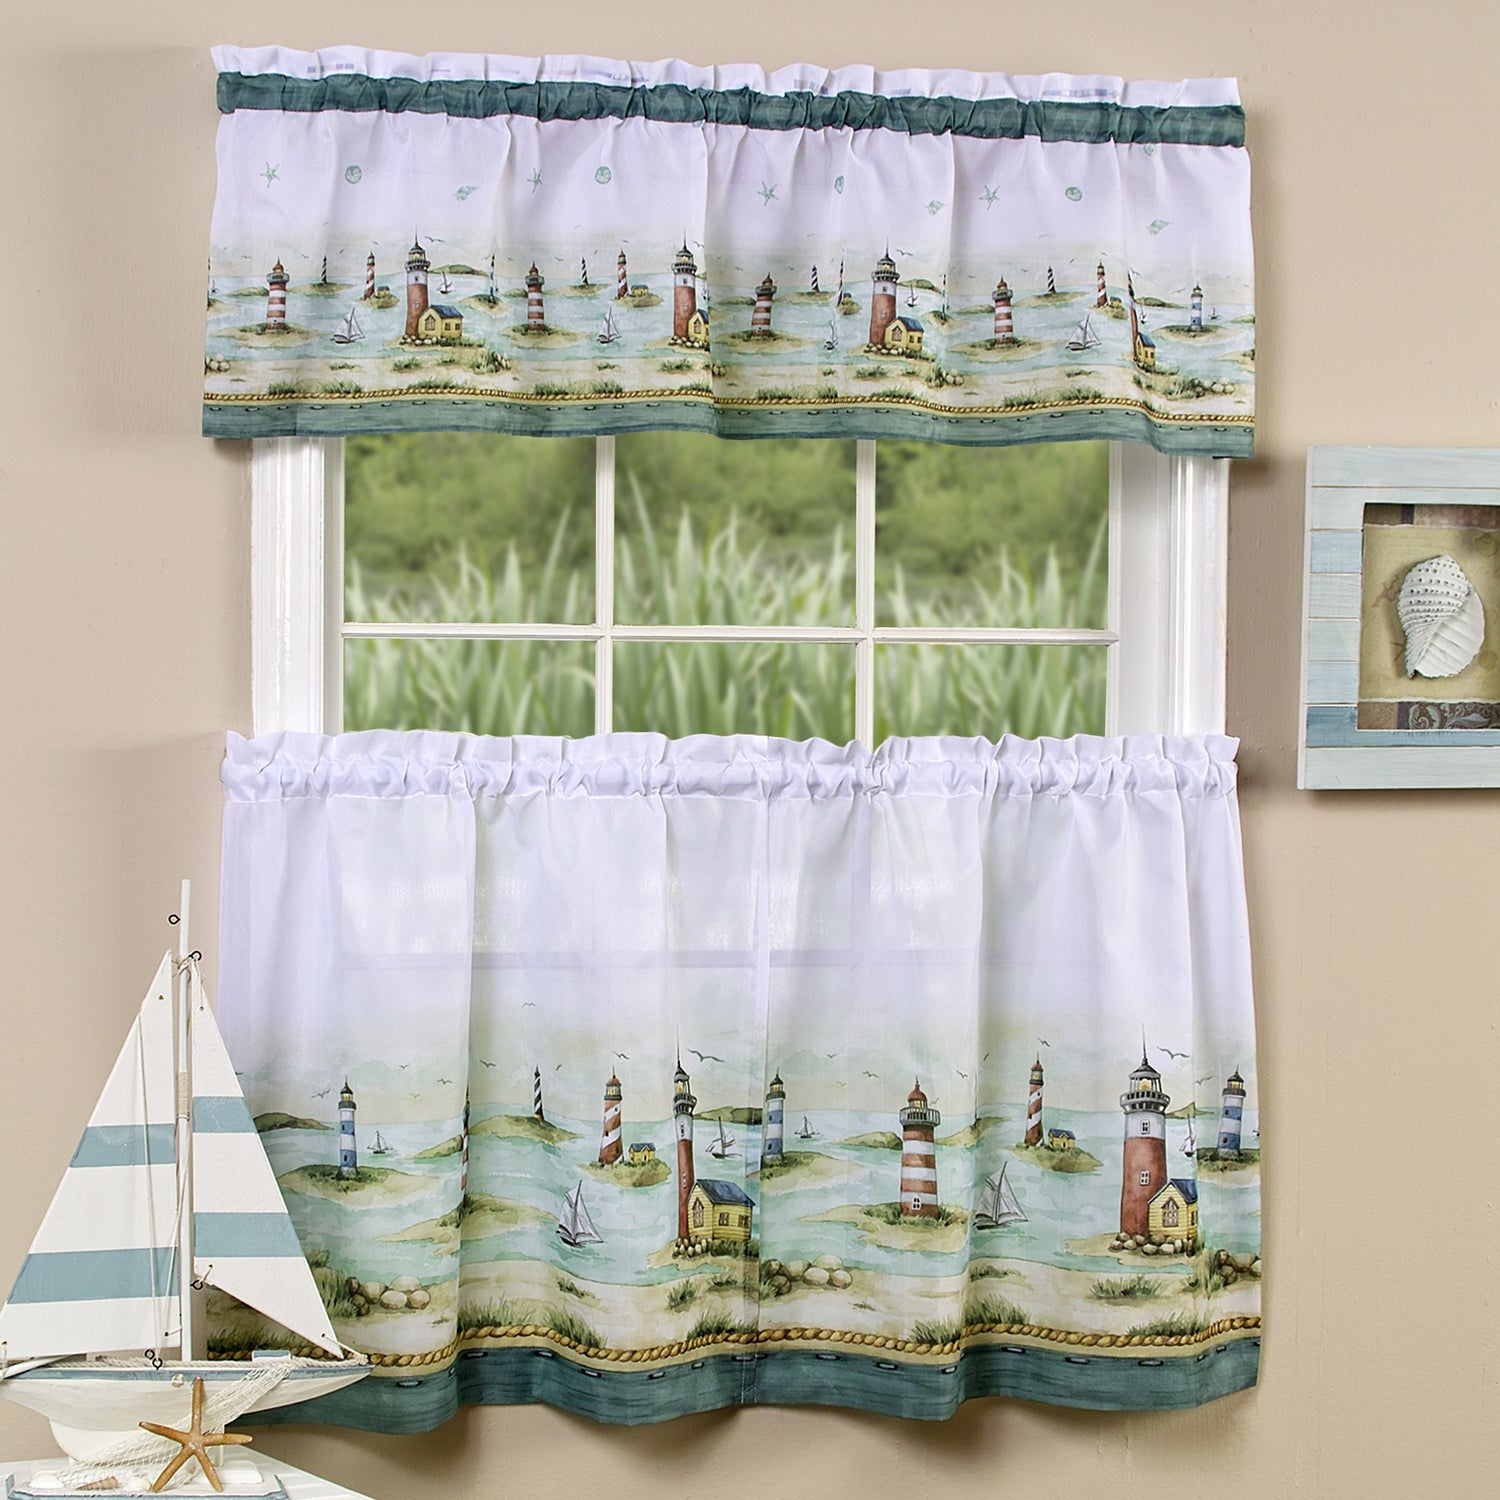 Traditional Two Piece Tailored Tier And Valance Window Curtains Set With Detailed Lighthouse Print – 36 Inch In Traditional Tailored Window Curtains With Embroidered Yellow Sunflowers (View 17 of 20)